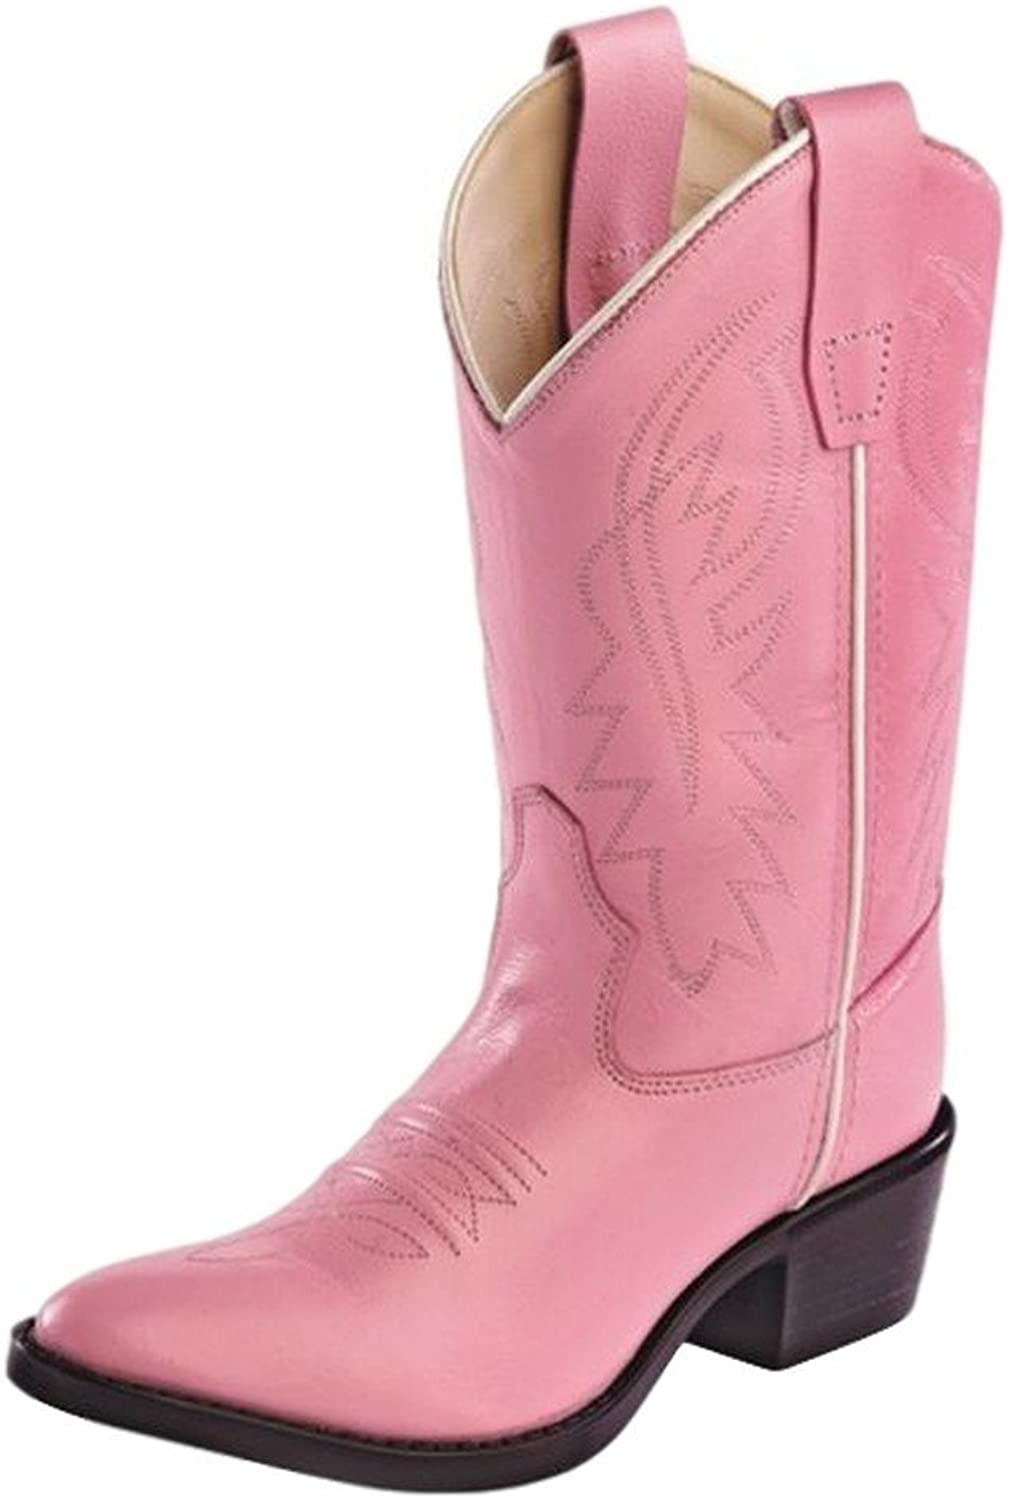 Old West Kids Boots Big Girls' Cowboy Leather Boots